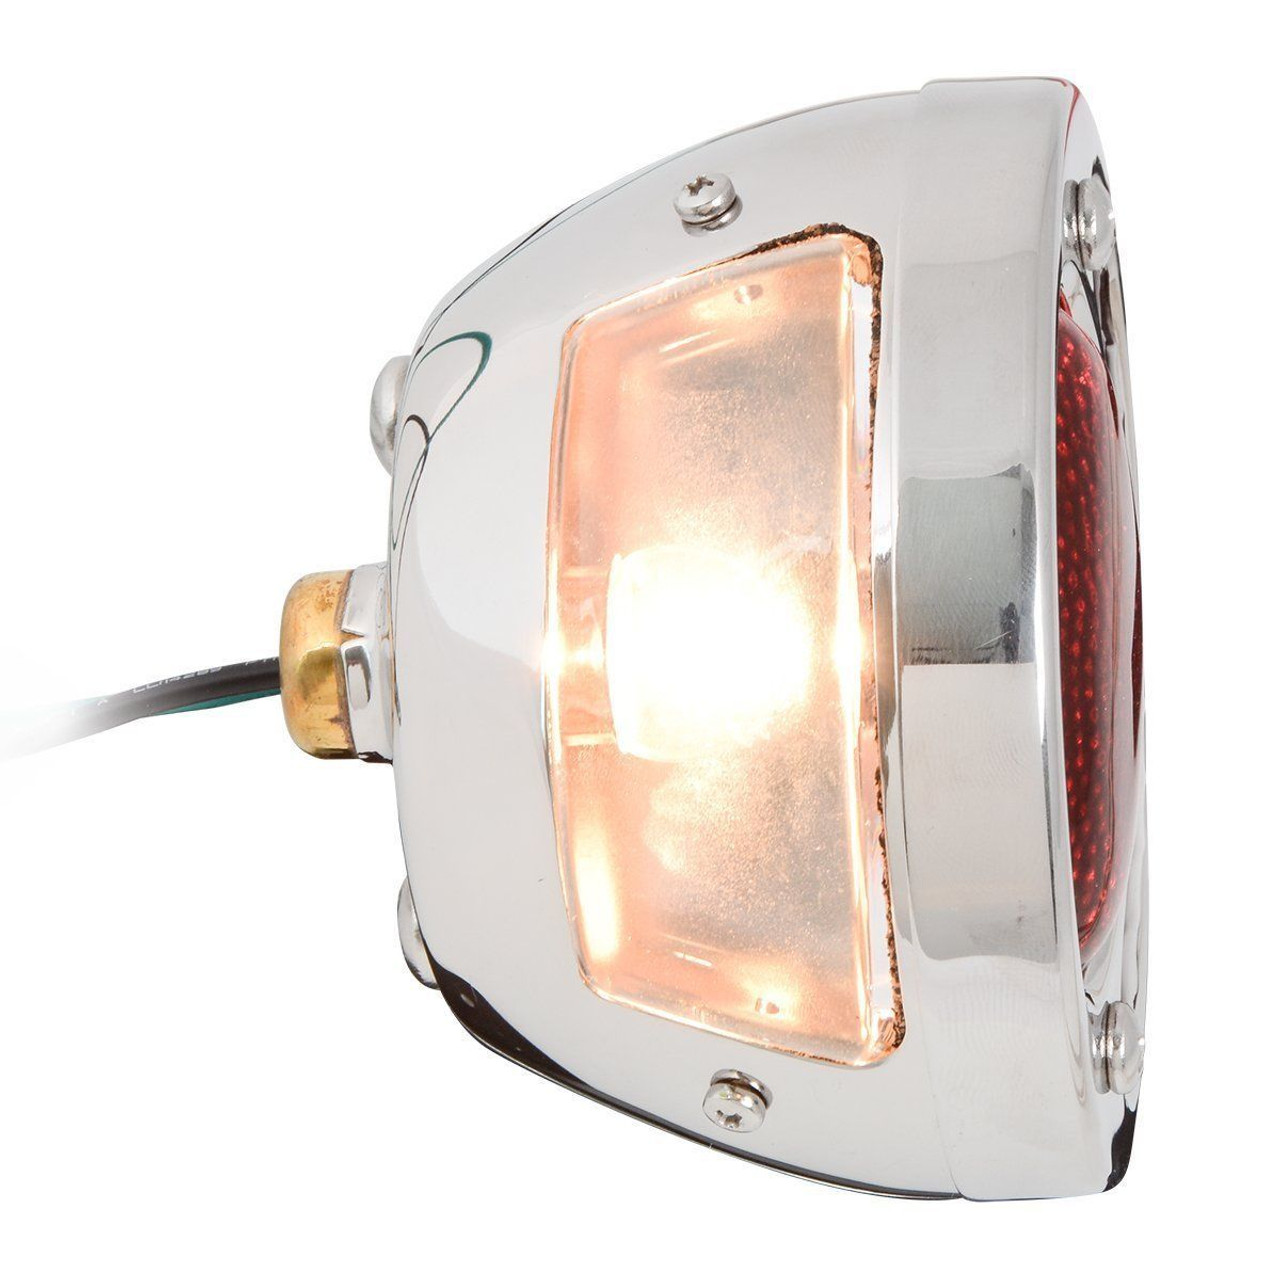 6V Stainless Steel Duolamp Tail Light w/ Amber/Red Glass Lens and License Light